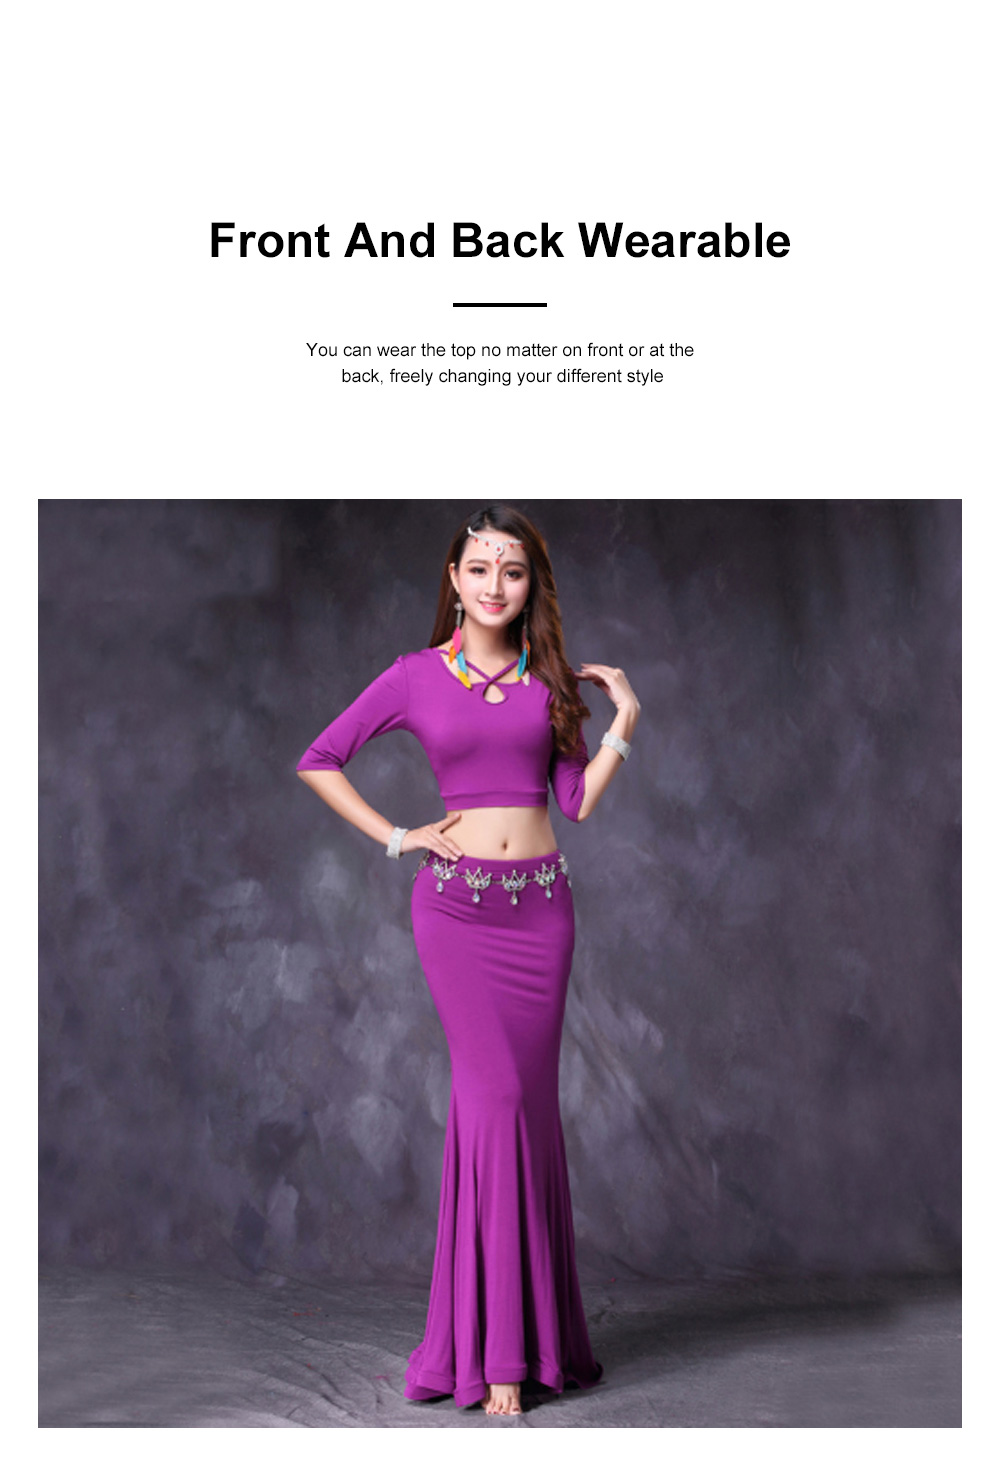 Belly Dance Costume Solid Color Set with Jewelry Decoration Fishtail Hemline Sheathe Dress 3